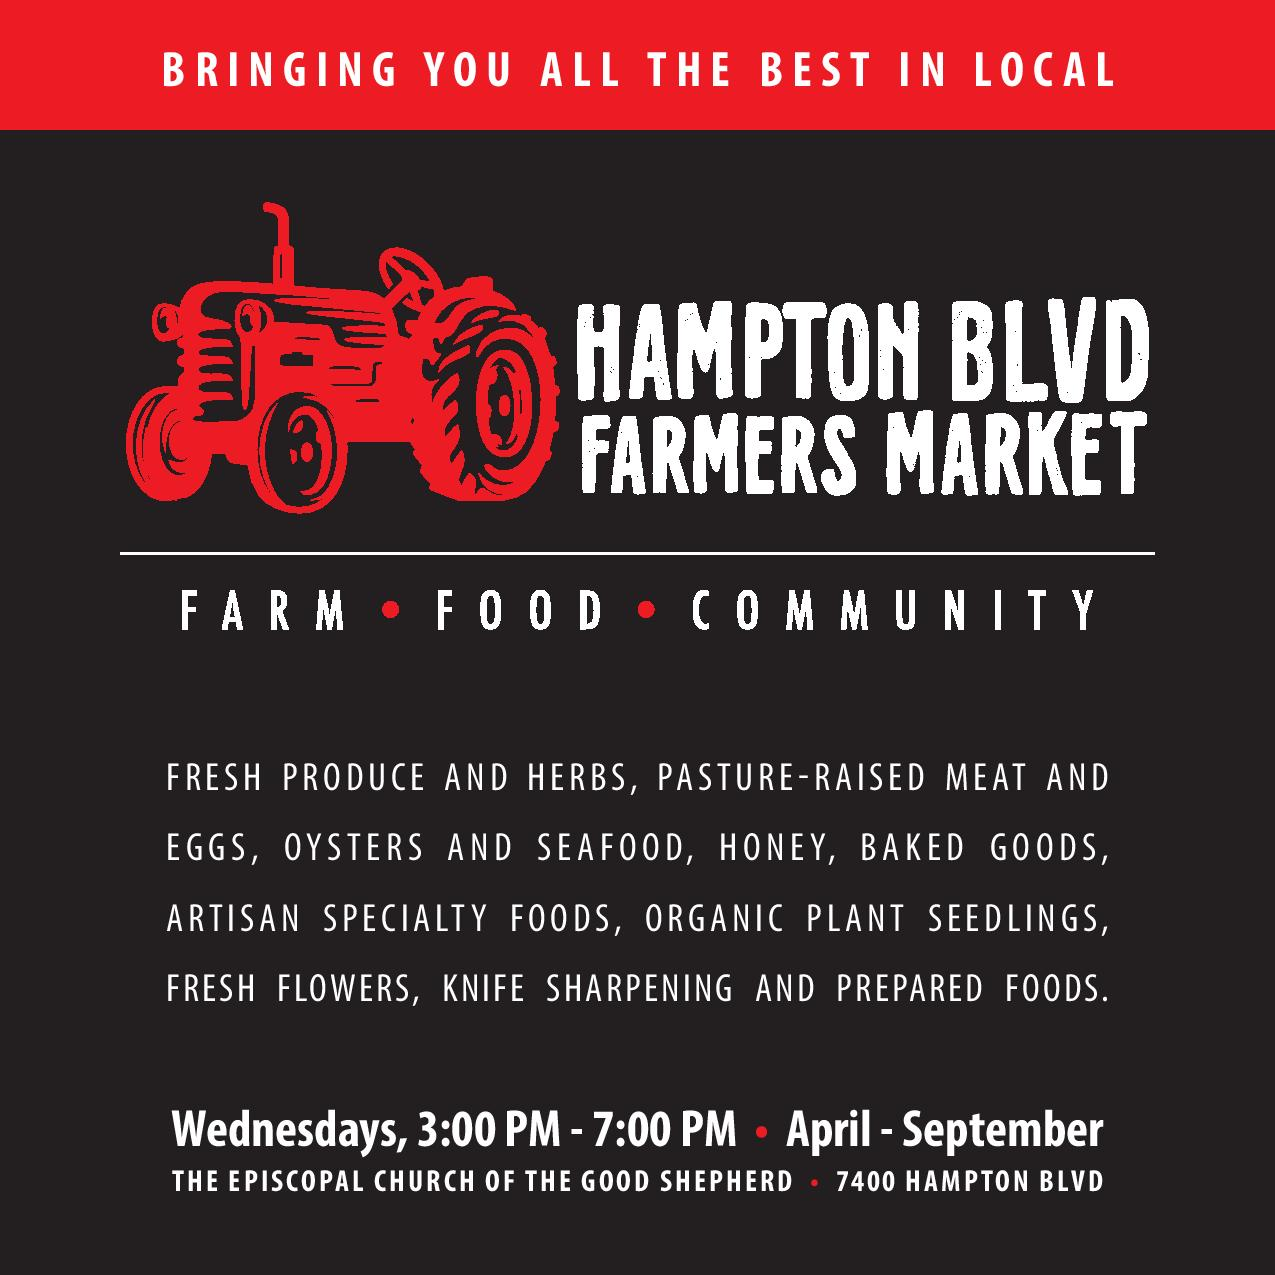 Hampton BLVD Farmers Market - Come see us every Wednesday 3PM to 7PM, April through September, for all the best in local! Twenty local vendors will gather weekly to bring you fresh-from-the-farm goodness and handmade artisan foods. We'll also have prepared foods that make dinner easy.We've planned a bonus market for the Sunday before Thanksgiving, so you can pick up all the provisions for your family feast and entertaining! Order your turkey early, as those will sell out.You'll find us in the parking lot of the Episcopal Church of the Good Shepherd, 7400 Hampton Blvd in Norfolk. Markets are rain or shine, and friendly, leashed dogs are welcome. It's great to know where your food comes from, buy fresh, and support local producers! Follow us on Facebook, Instagram or Twitter, or visit our website at www.HamptonBlvdFarmersMarket.com.